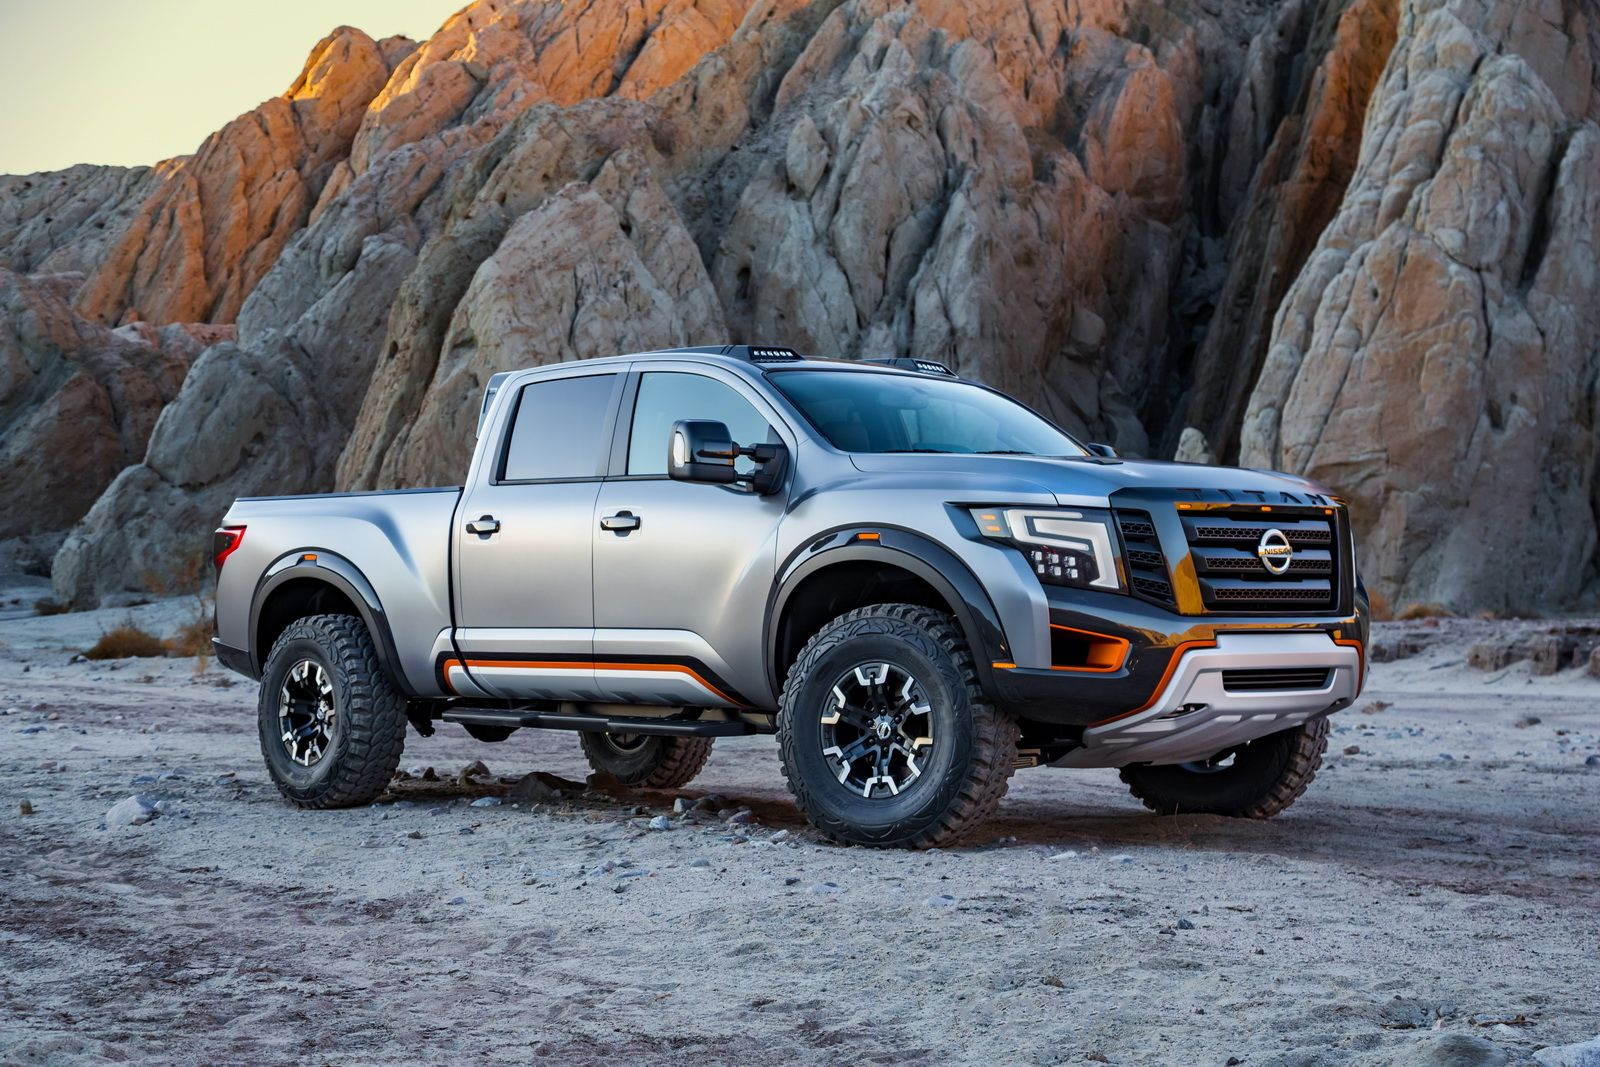 Nissan revealed the titan warrior pickup truck in detroit an angry off road concept based on the regular production model